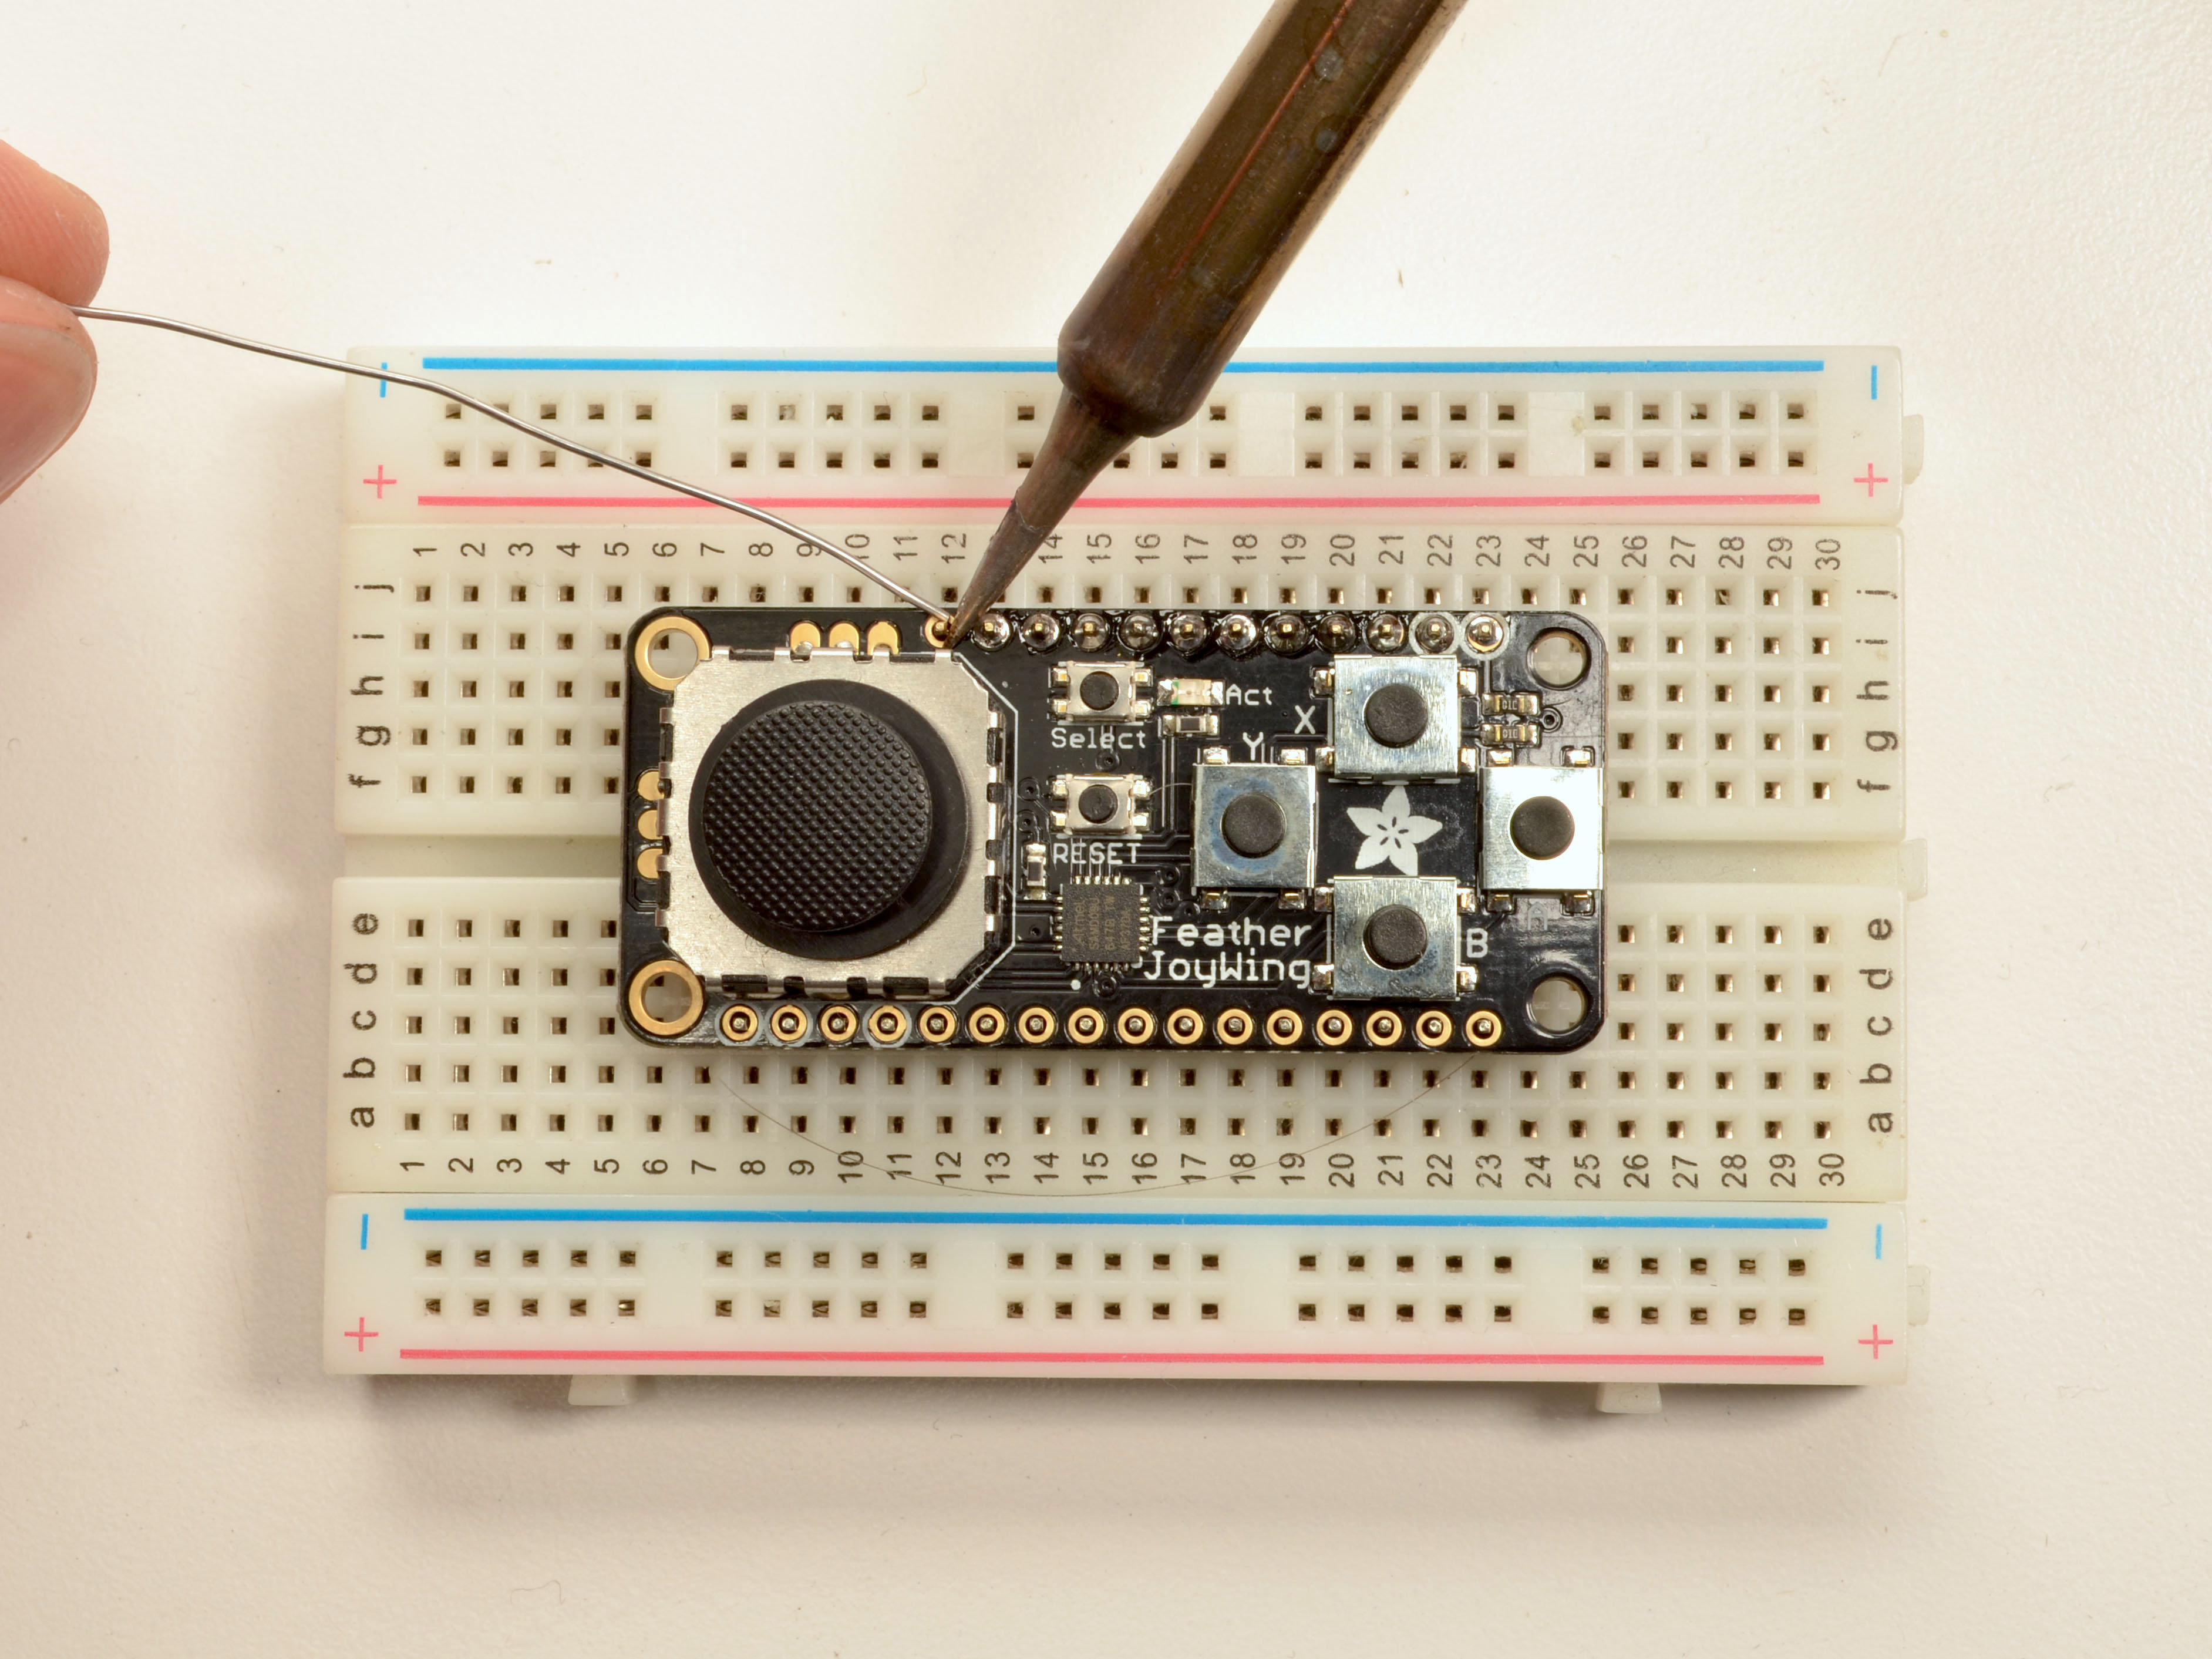 adafruit_products_DSC_3989.jpg